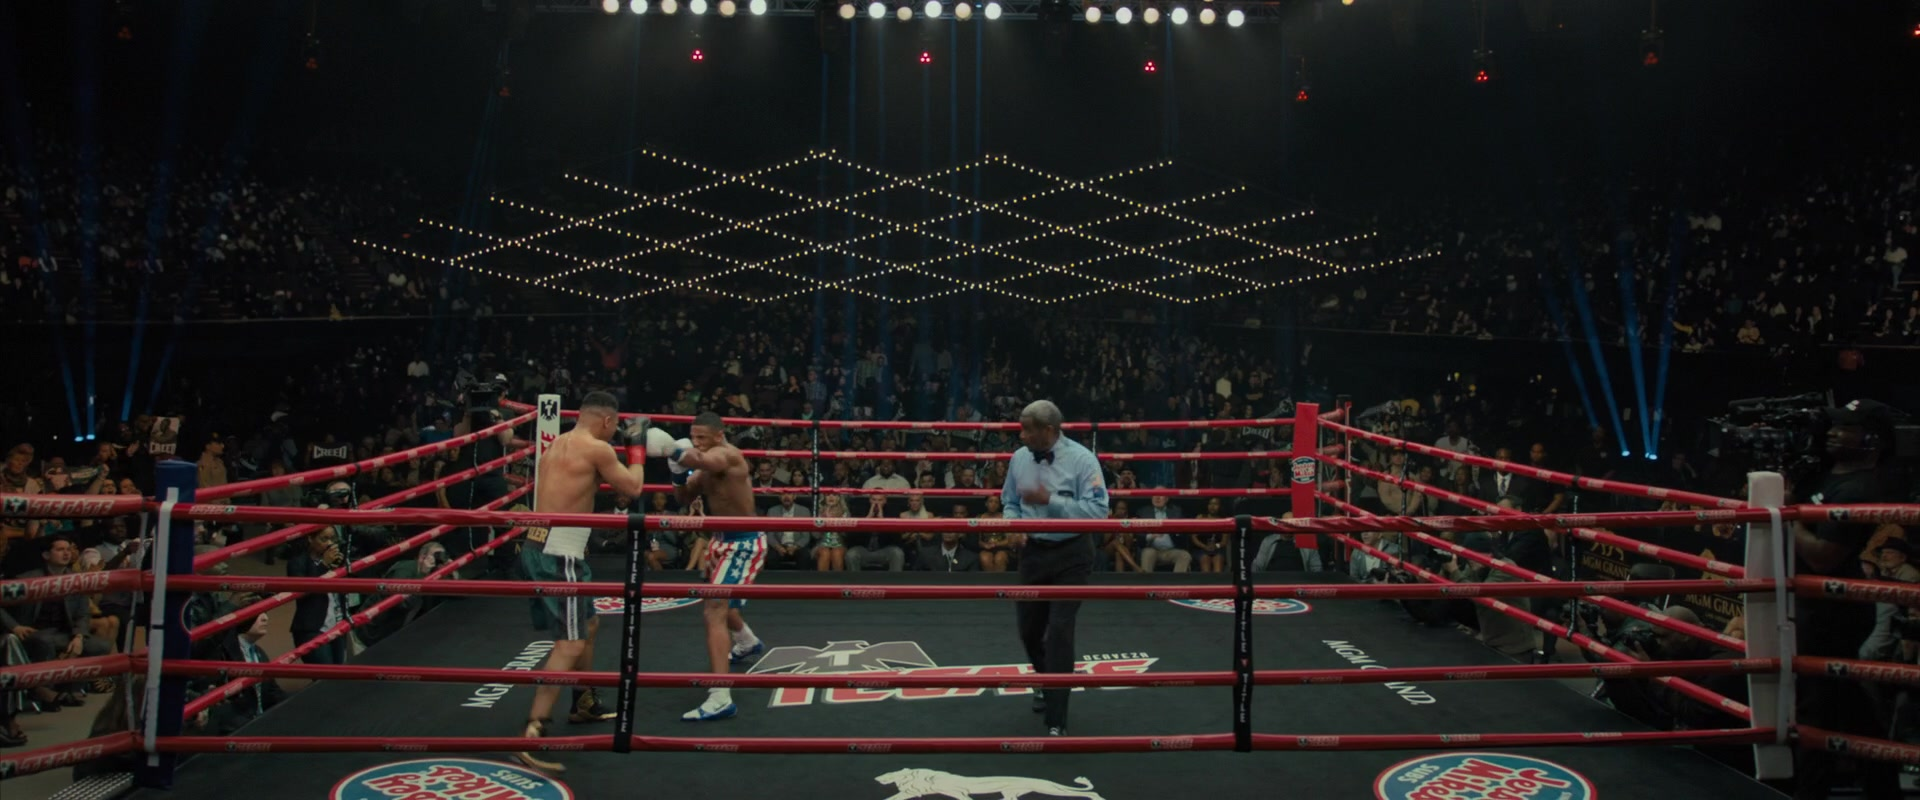 Infiniti Of Troy >> MGM Grand x Tecate Beer Boxing Ring in Creed 2 (2018) Movie